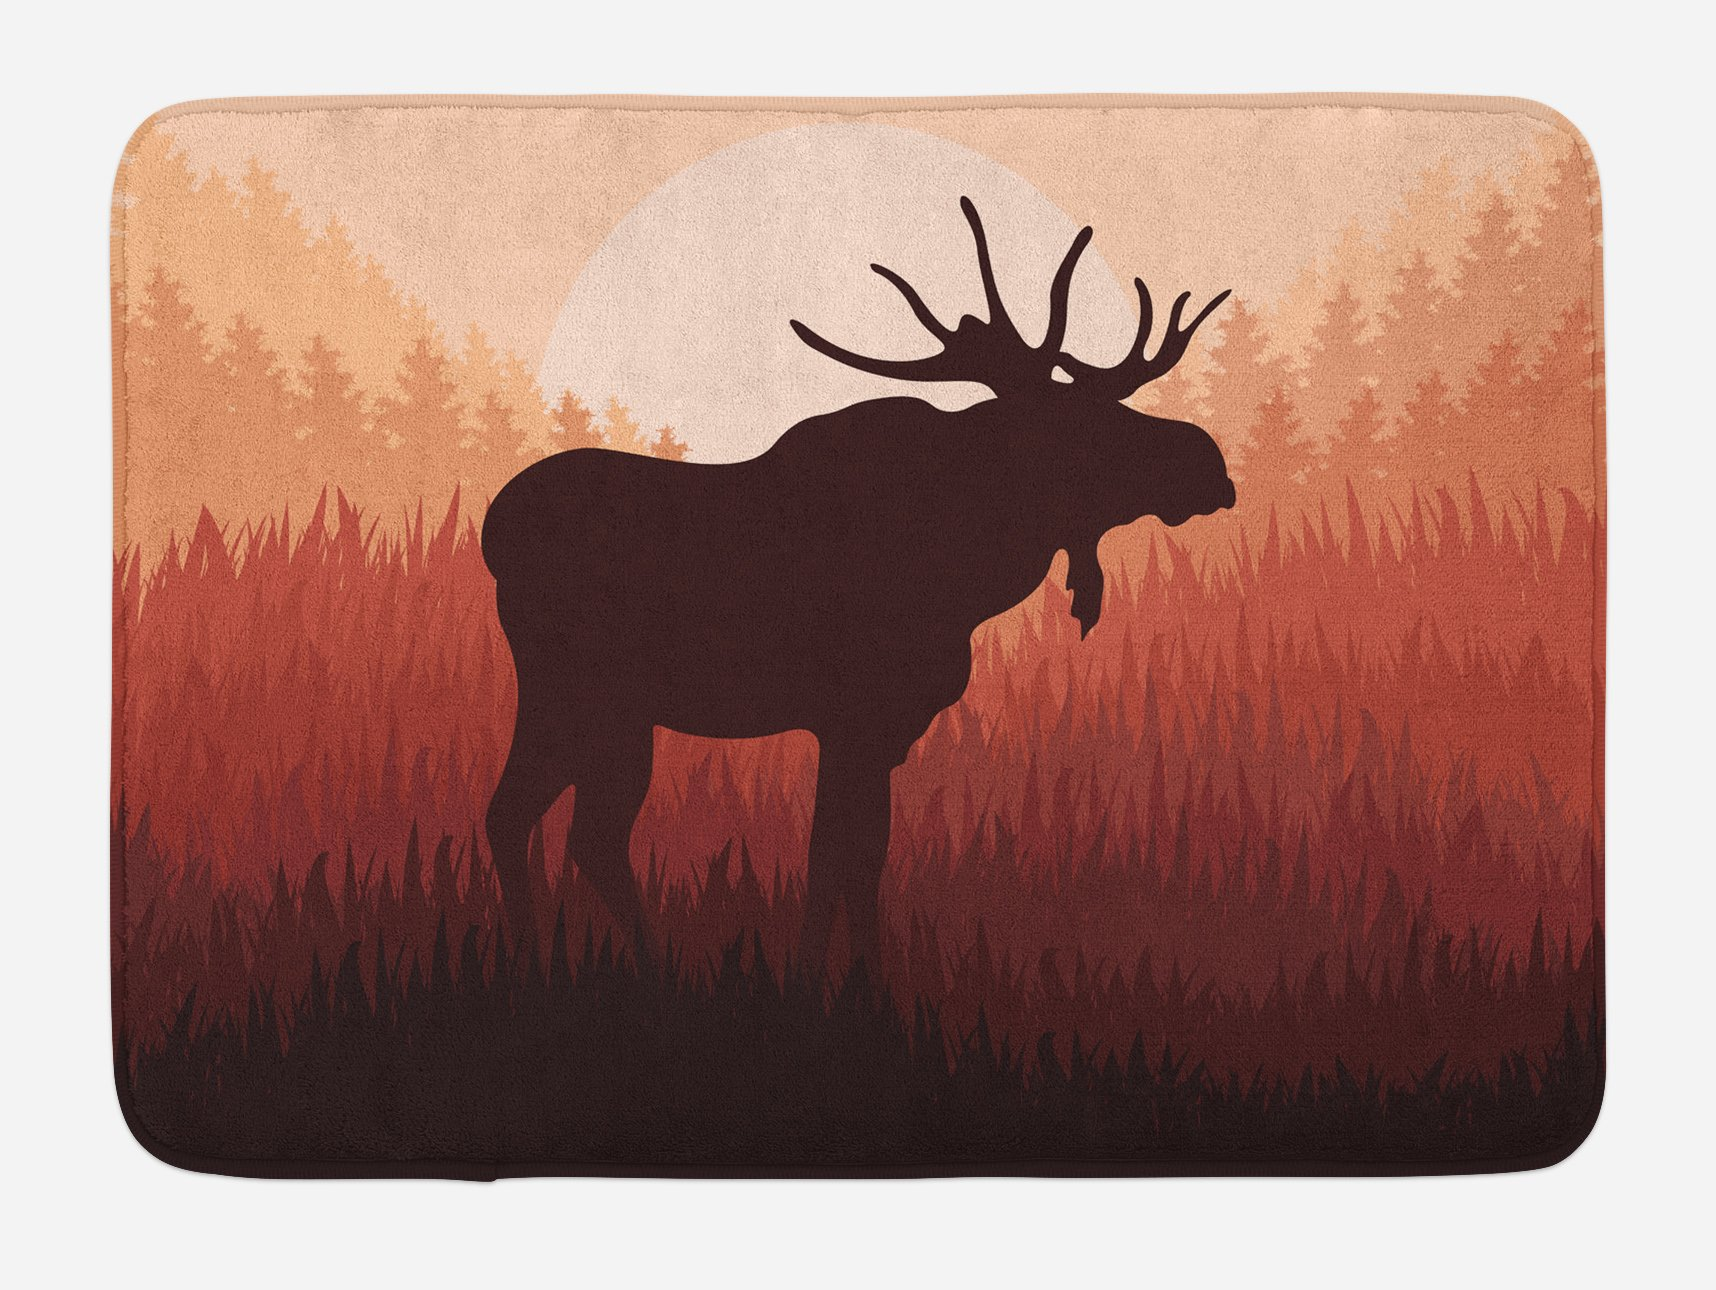 Ambesonne Moose Bath Mat, Antlers in Wild Alaska Forest Rusty Abstract Landscape Design Deer Theme Woods, Plush Bathroom Decor Mat with Non Slip Backing, 29.5 W X 17.5 W Inches, Peach and Brown